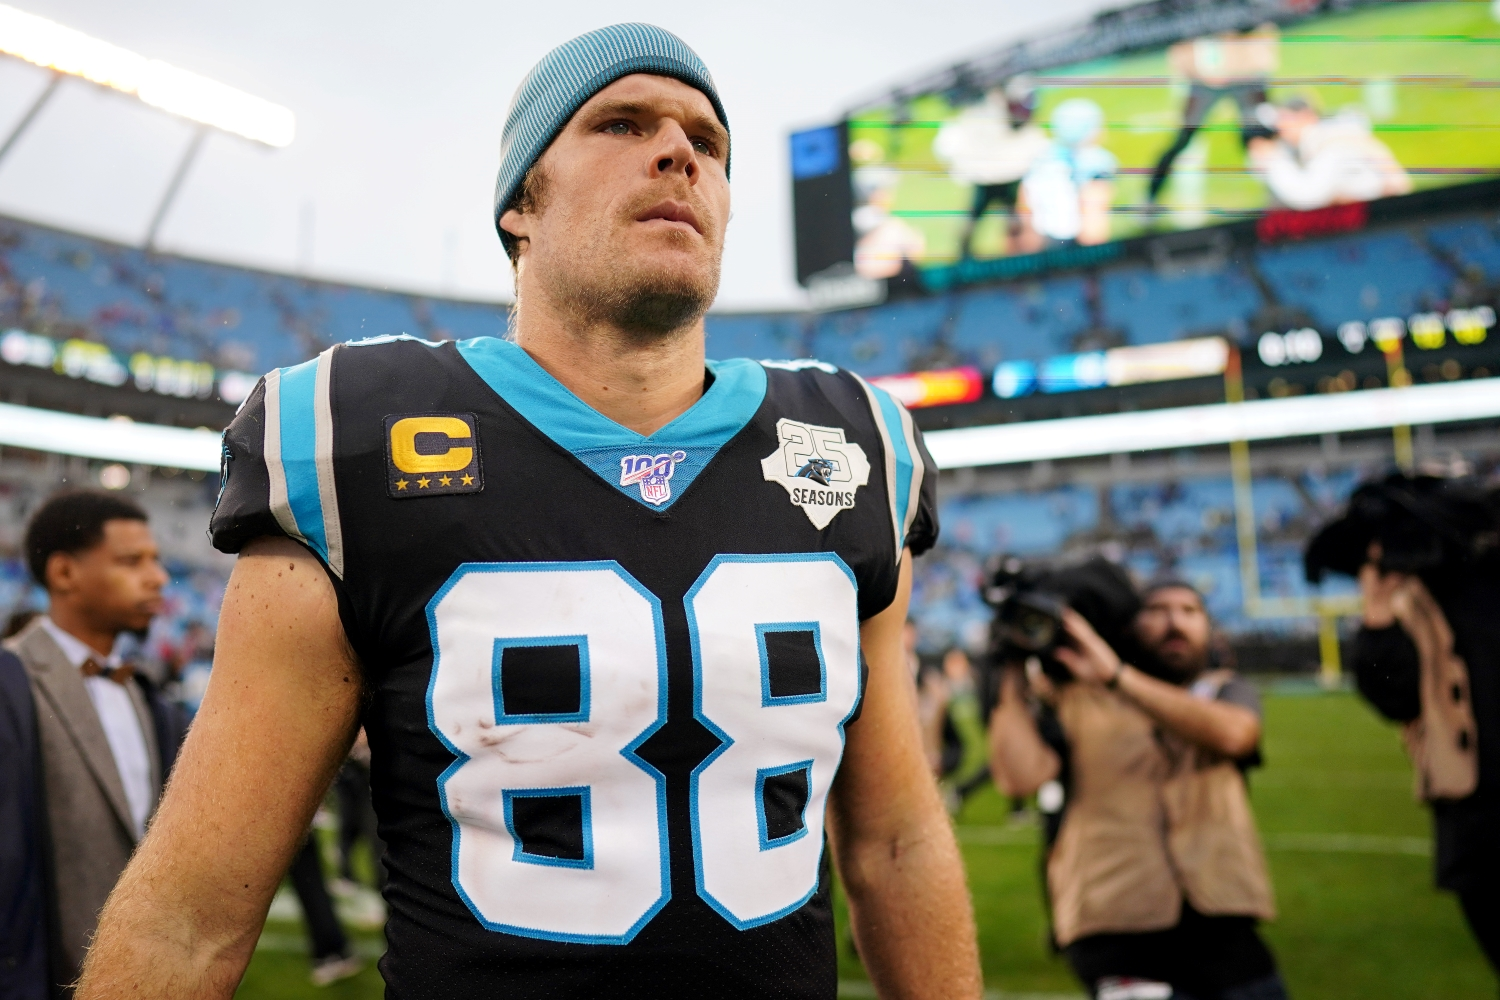 Former Panthers Star Greg Olsen Shares Critical Update About His Son's Life-Threatening Heart Condition